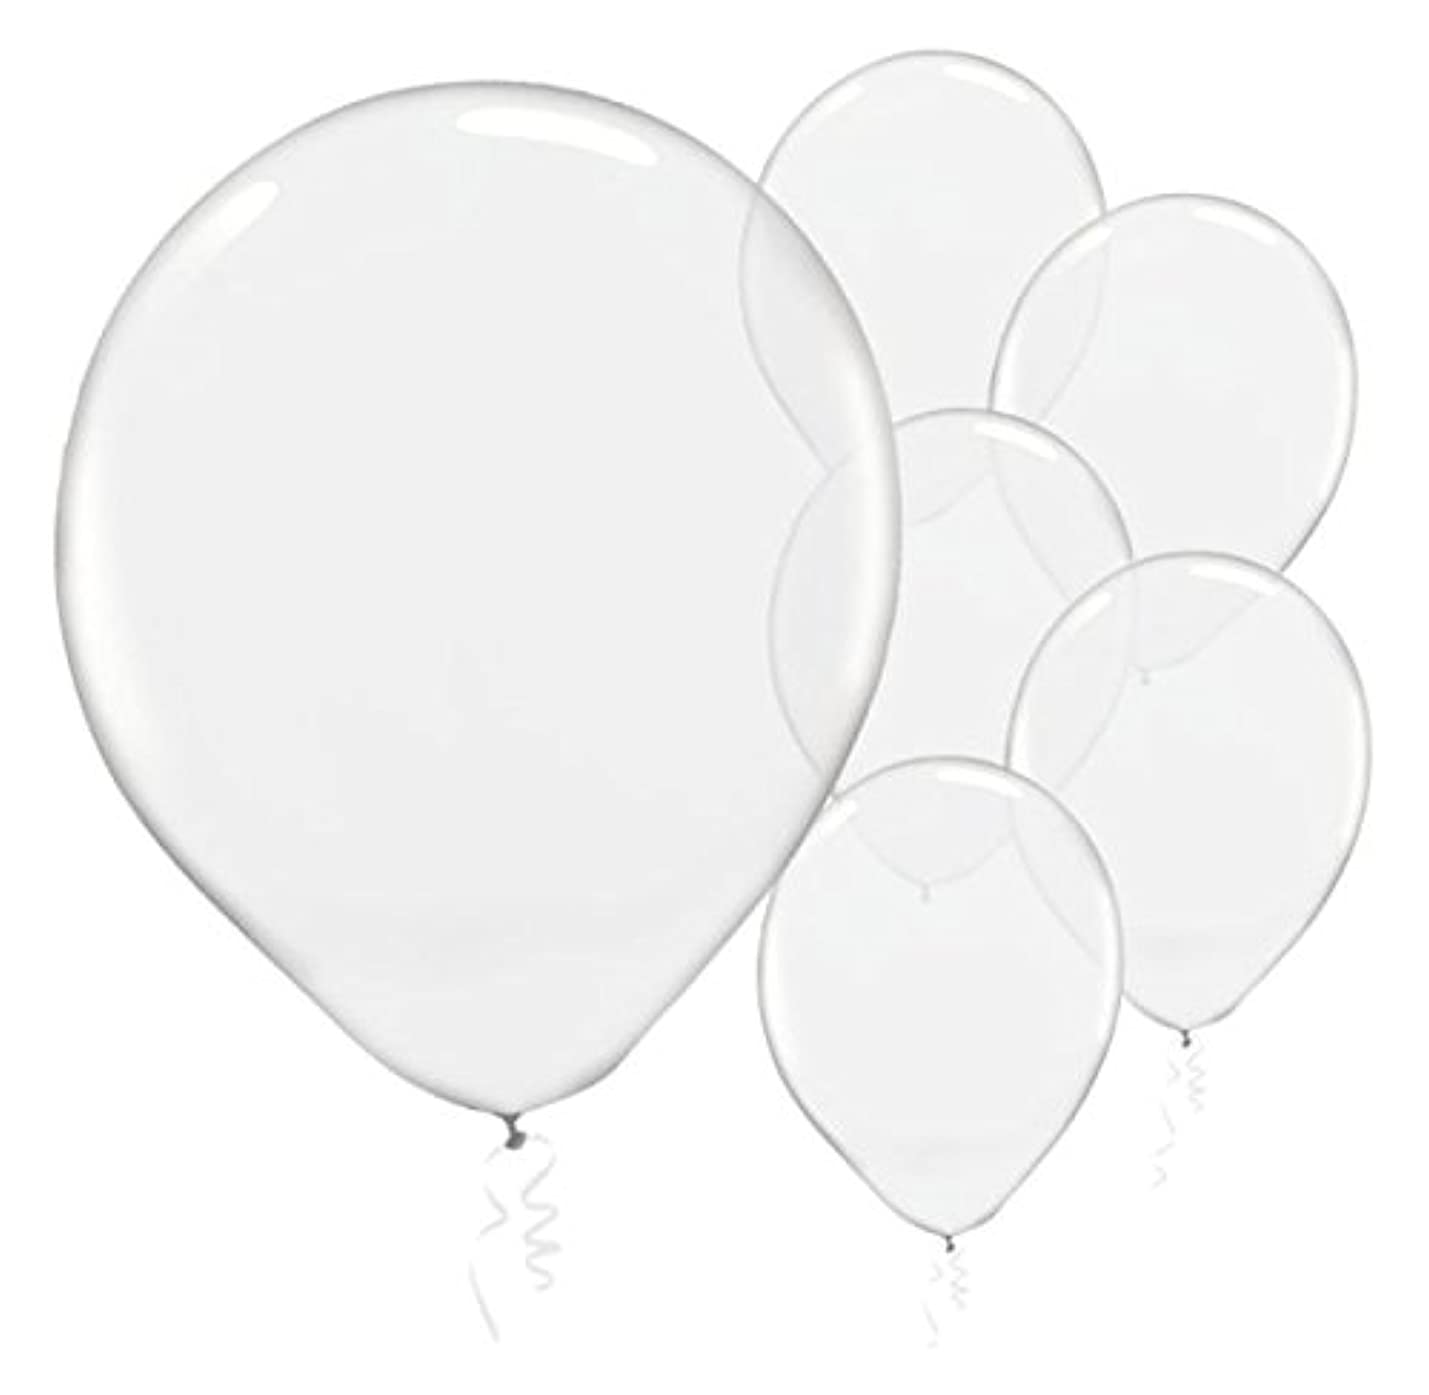 Solid Color Latex Balloons - Clear Transparent Color, Pack of 72, Party Decor ywtnhpcicainl574